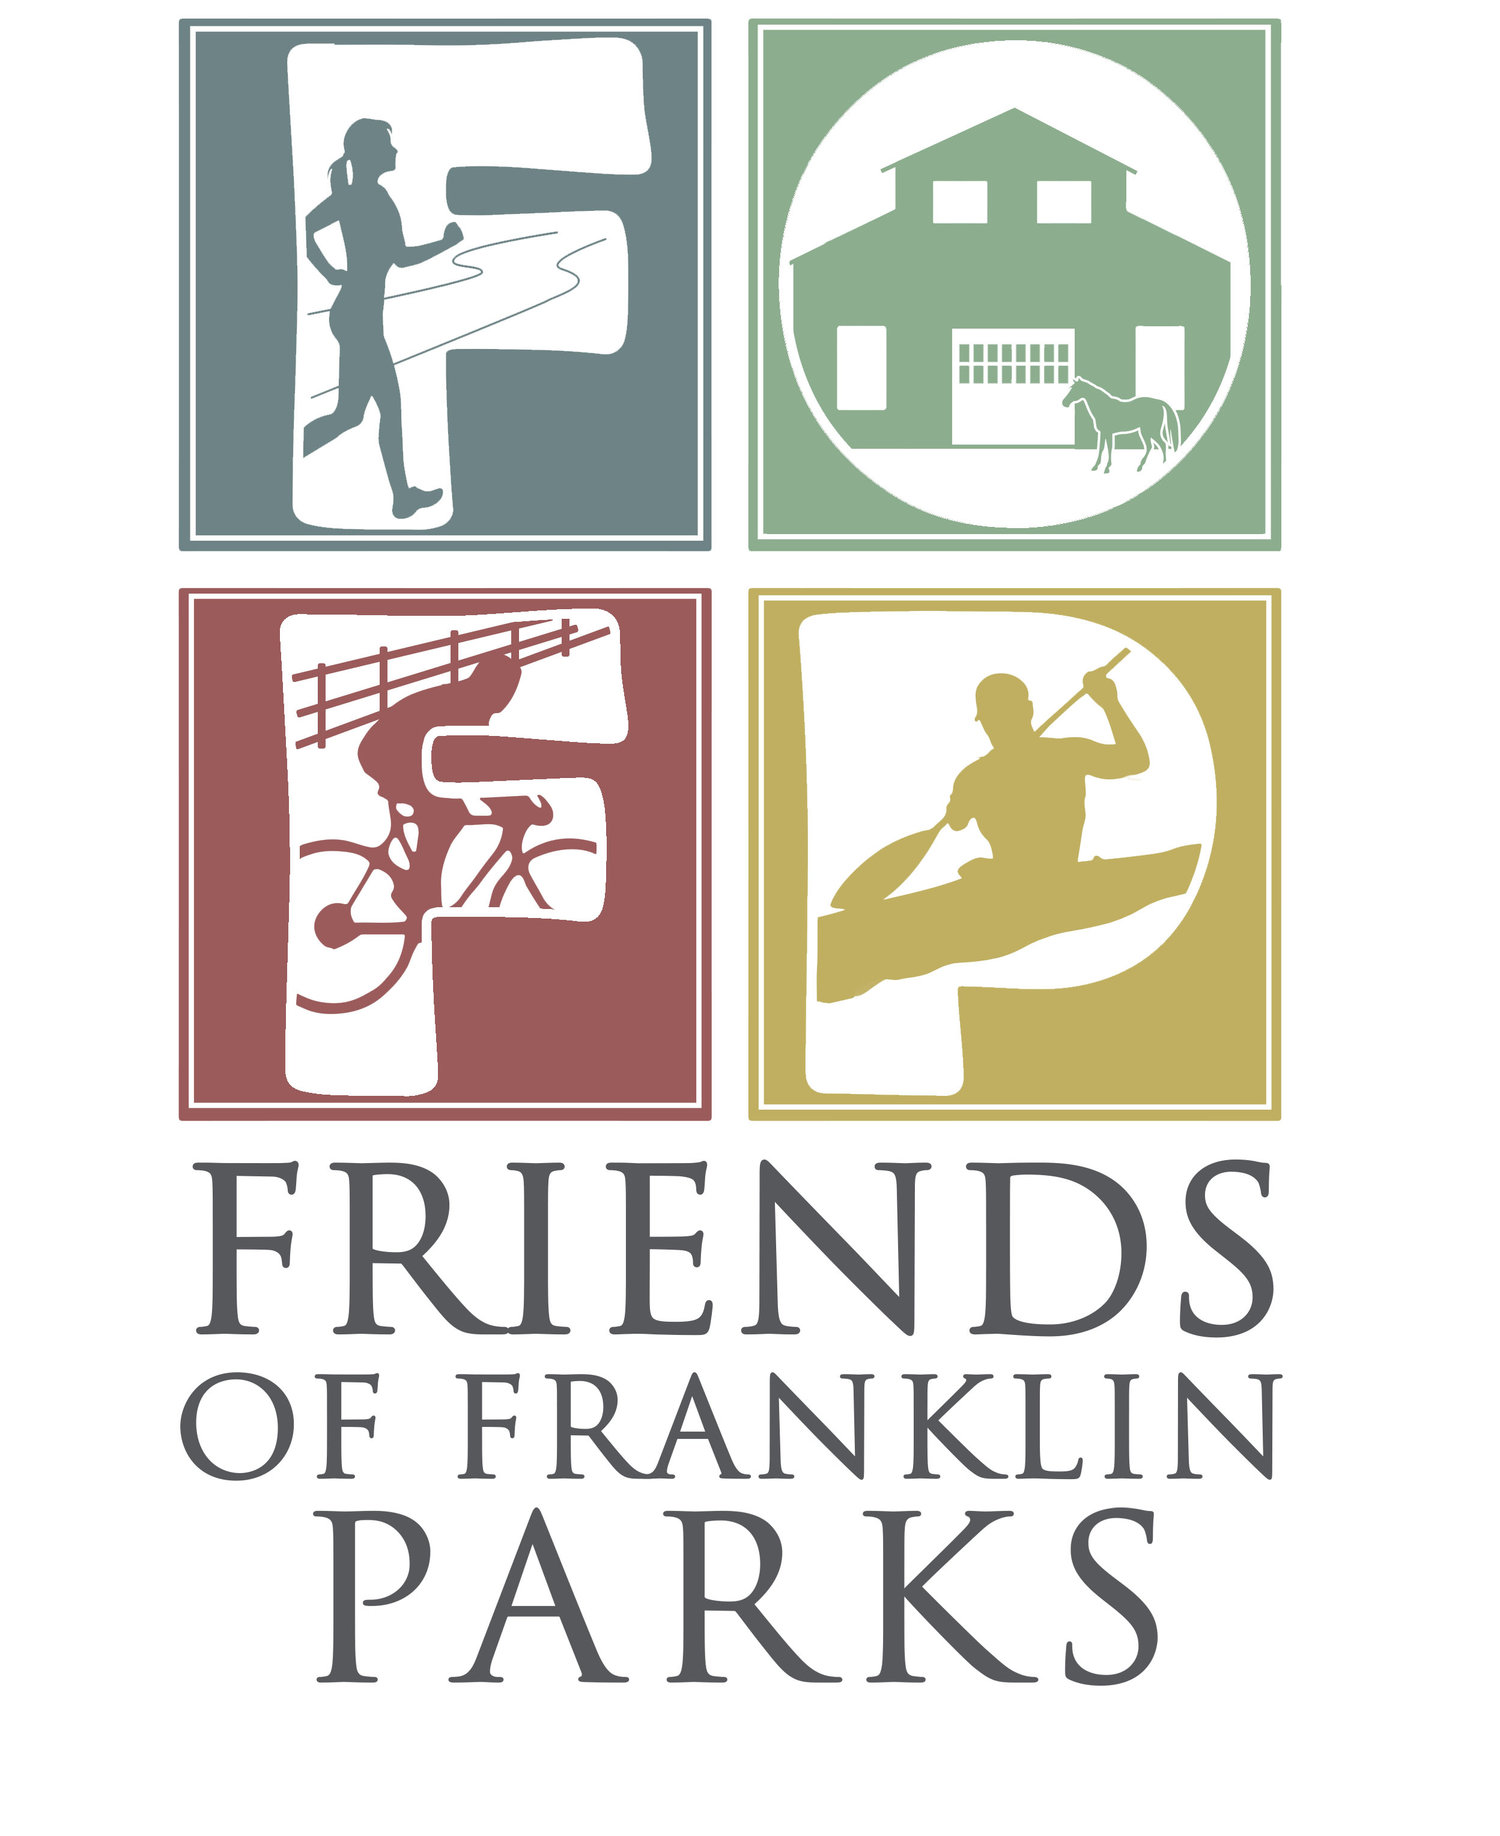 Friends of Franklin Parks